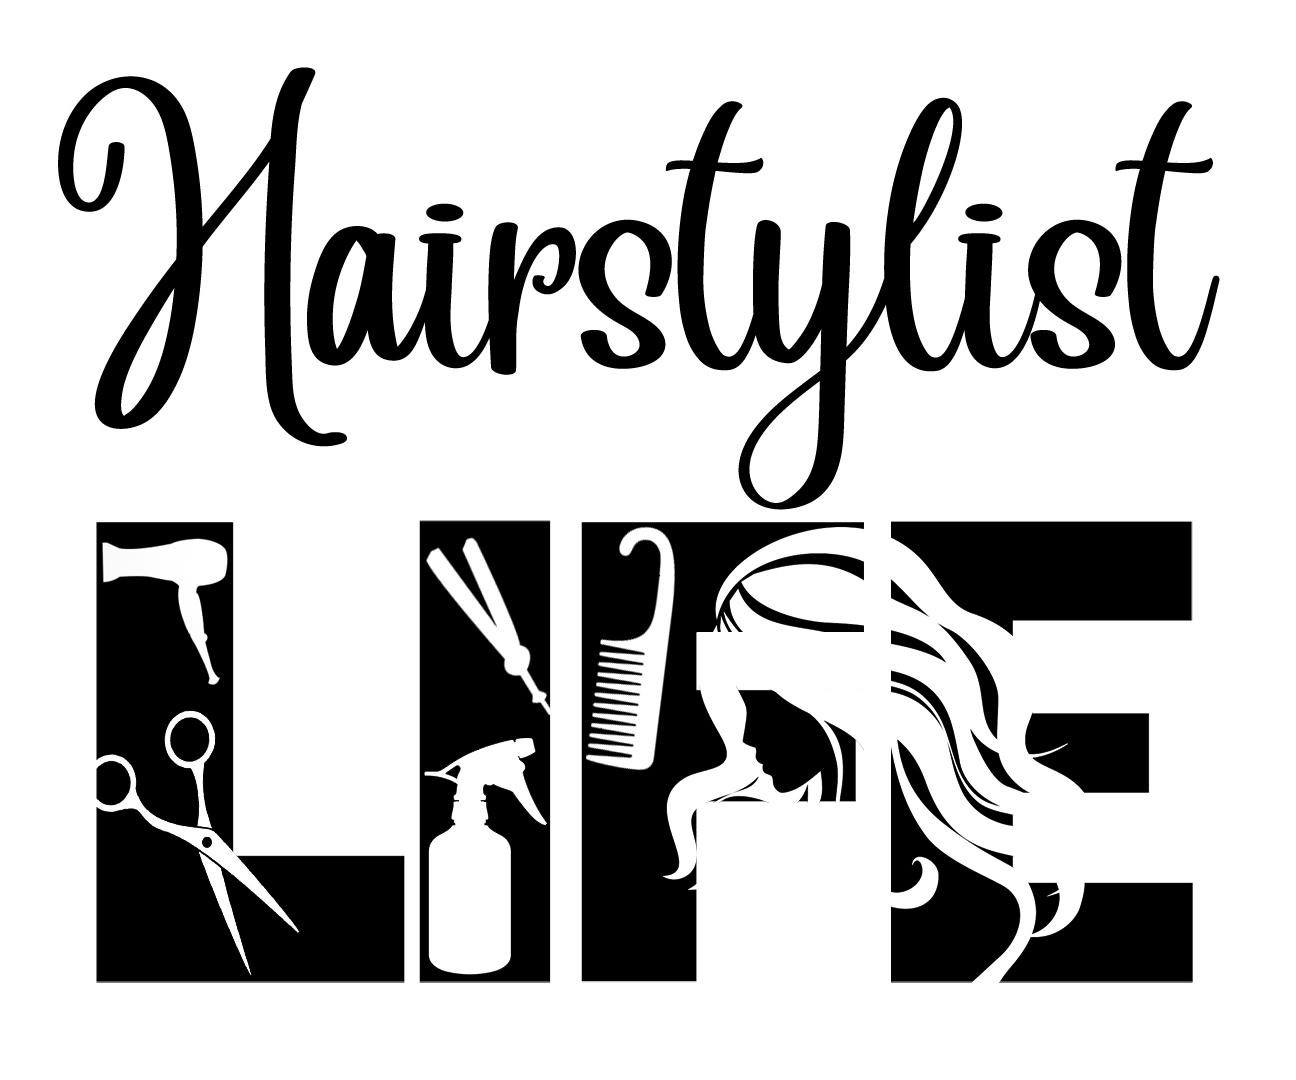 Free Hairstylist SVG File